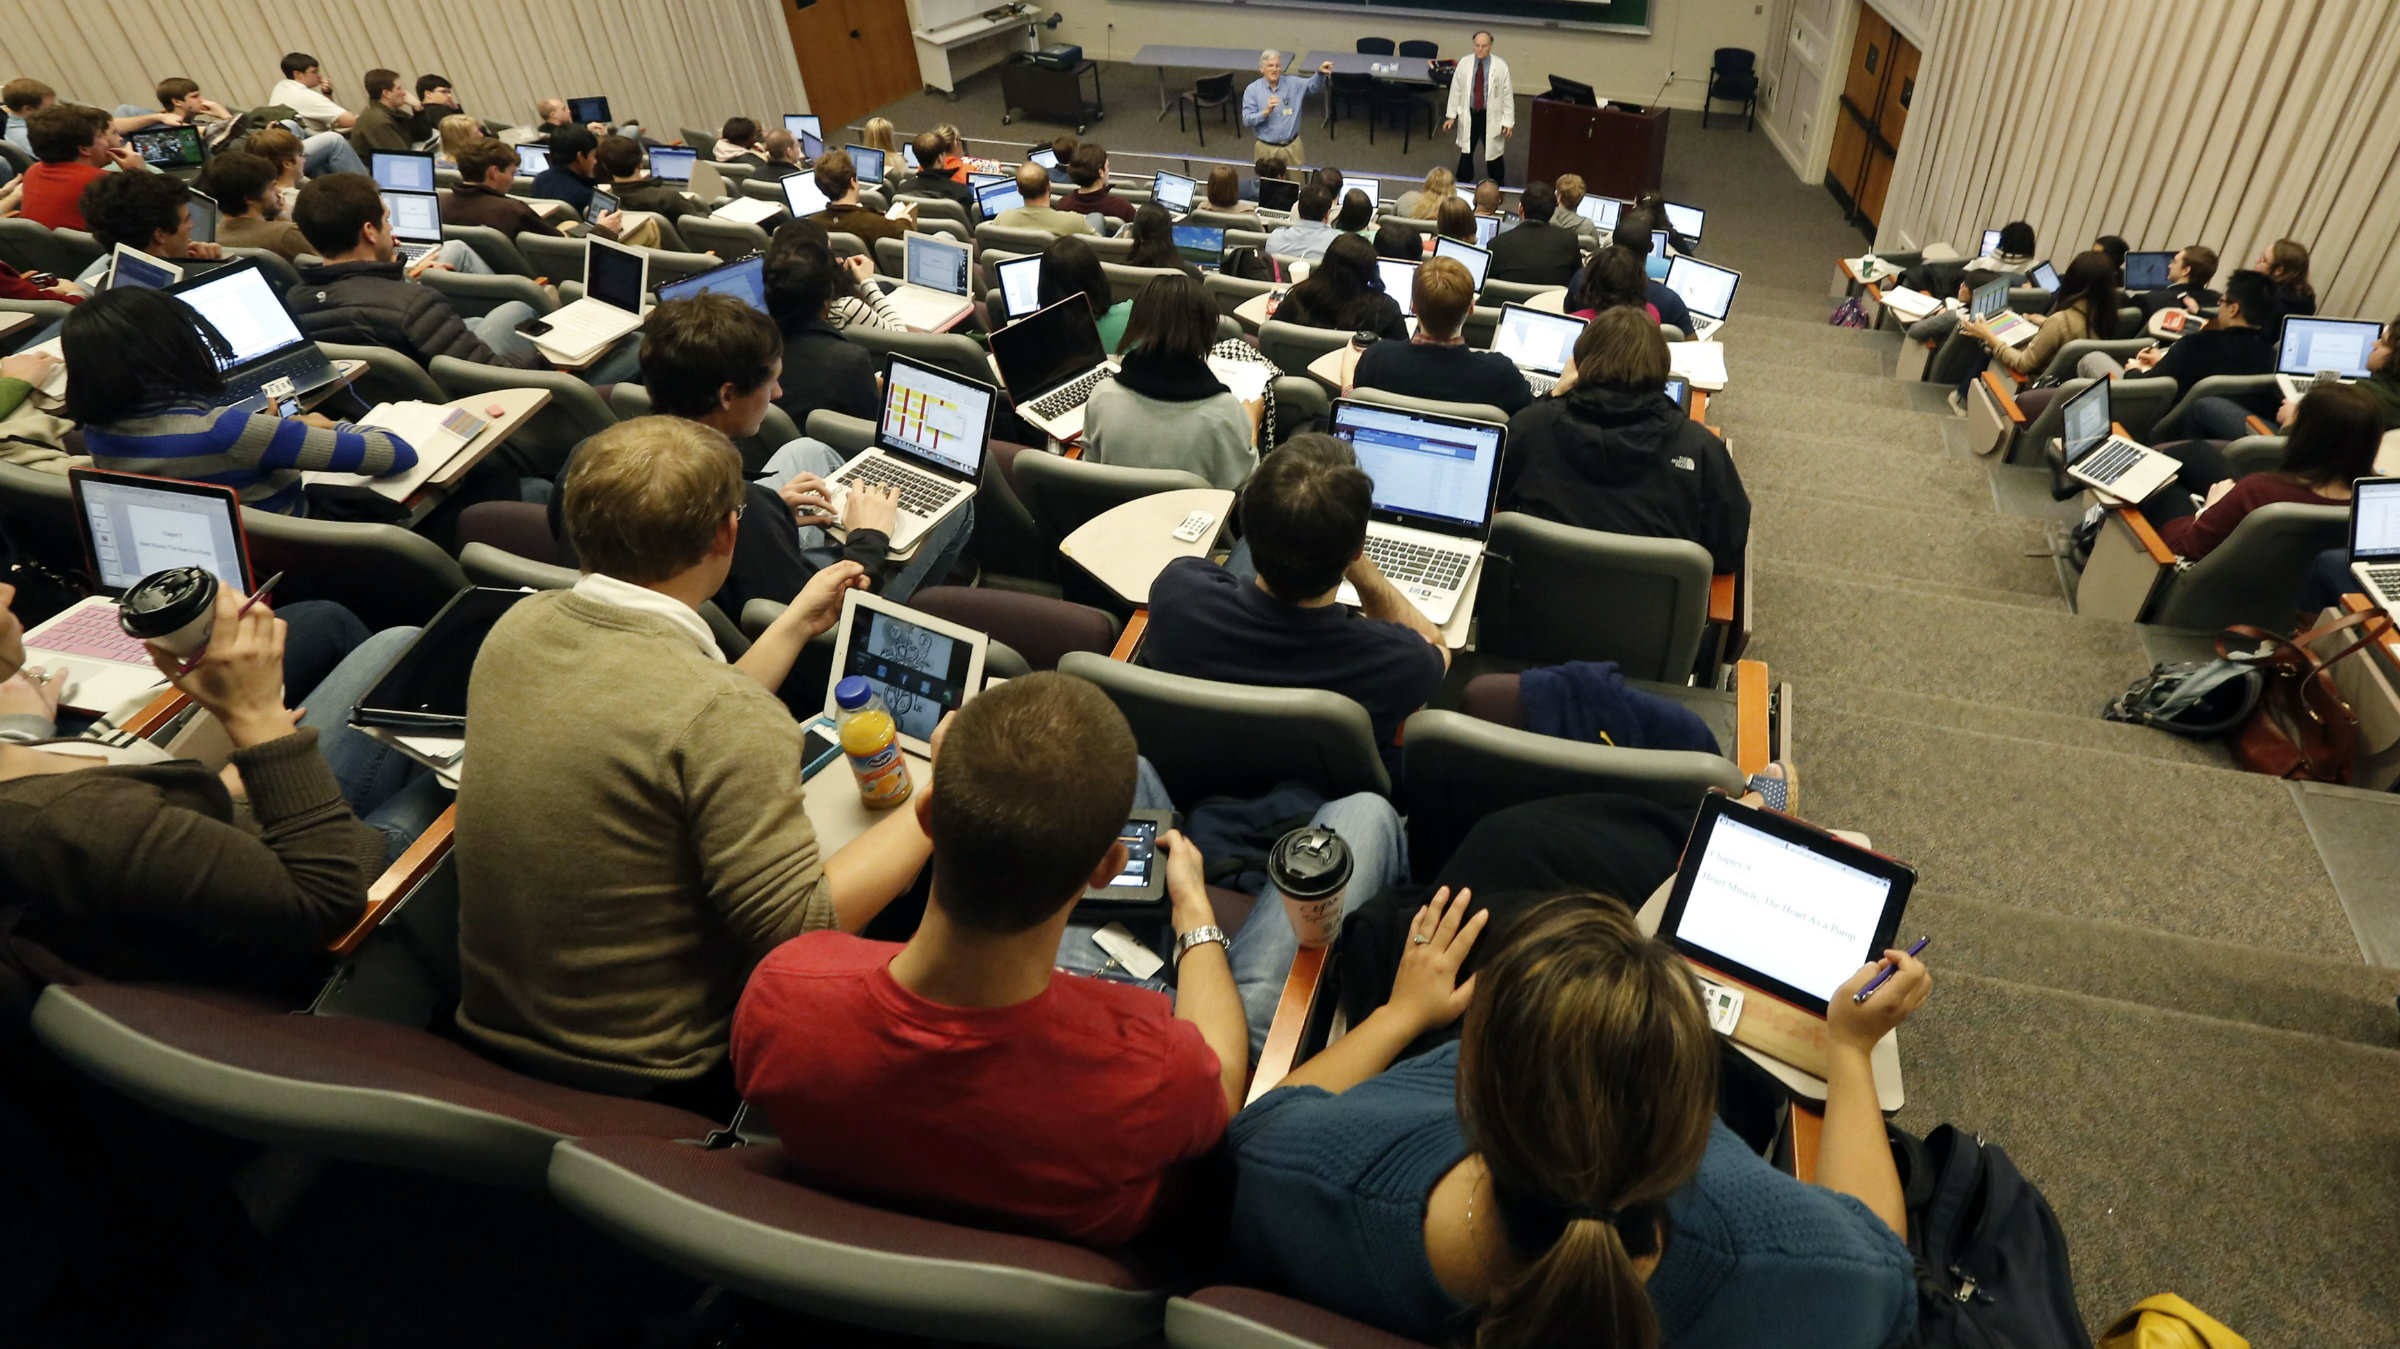 Students cram into an old lecture hall at the University of Mississippi Medical School.